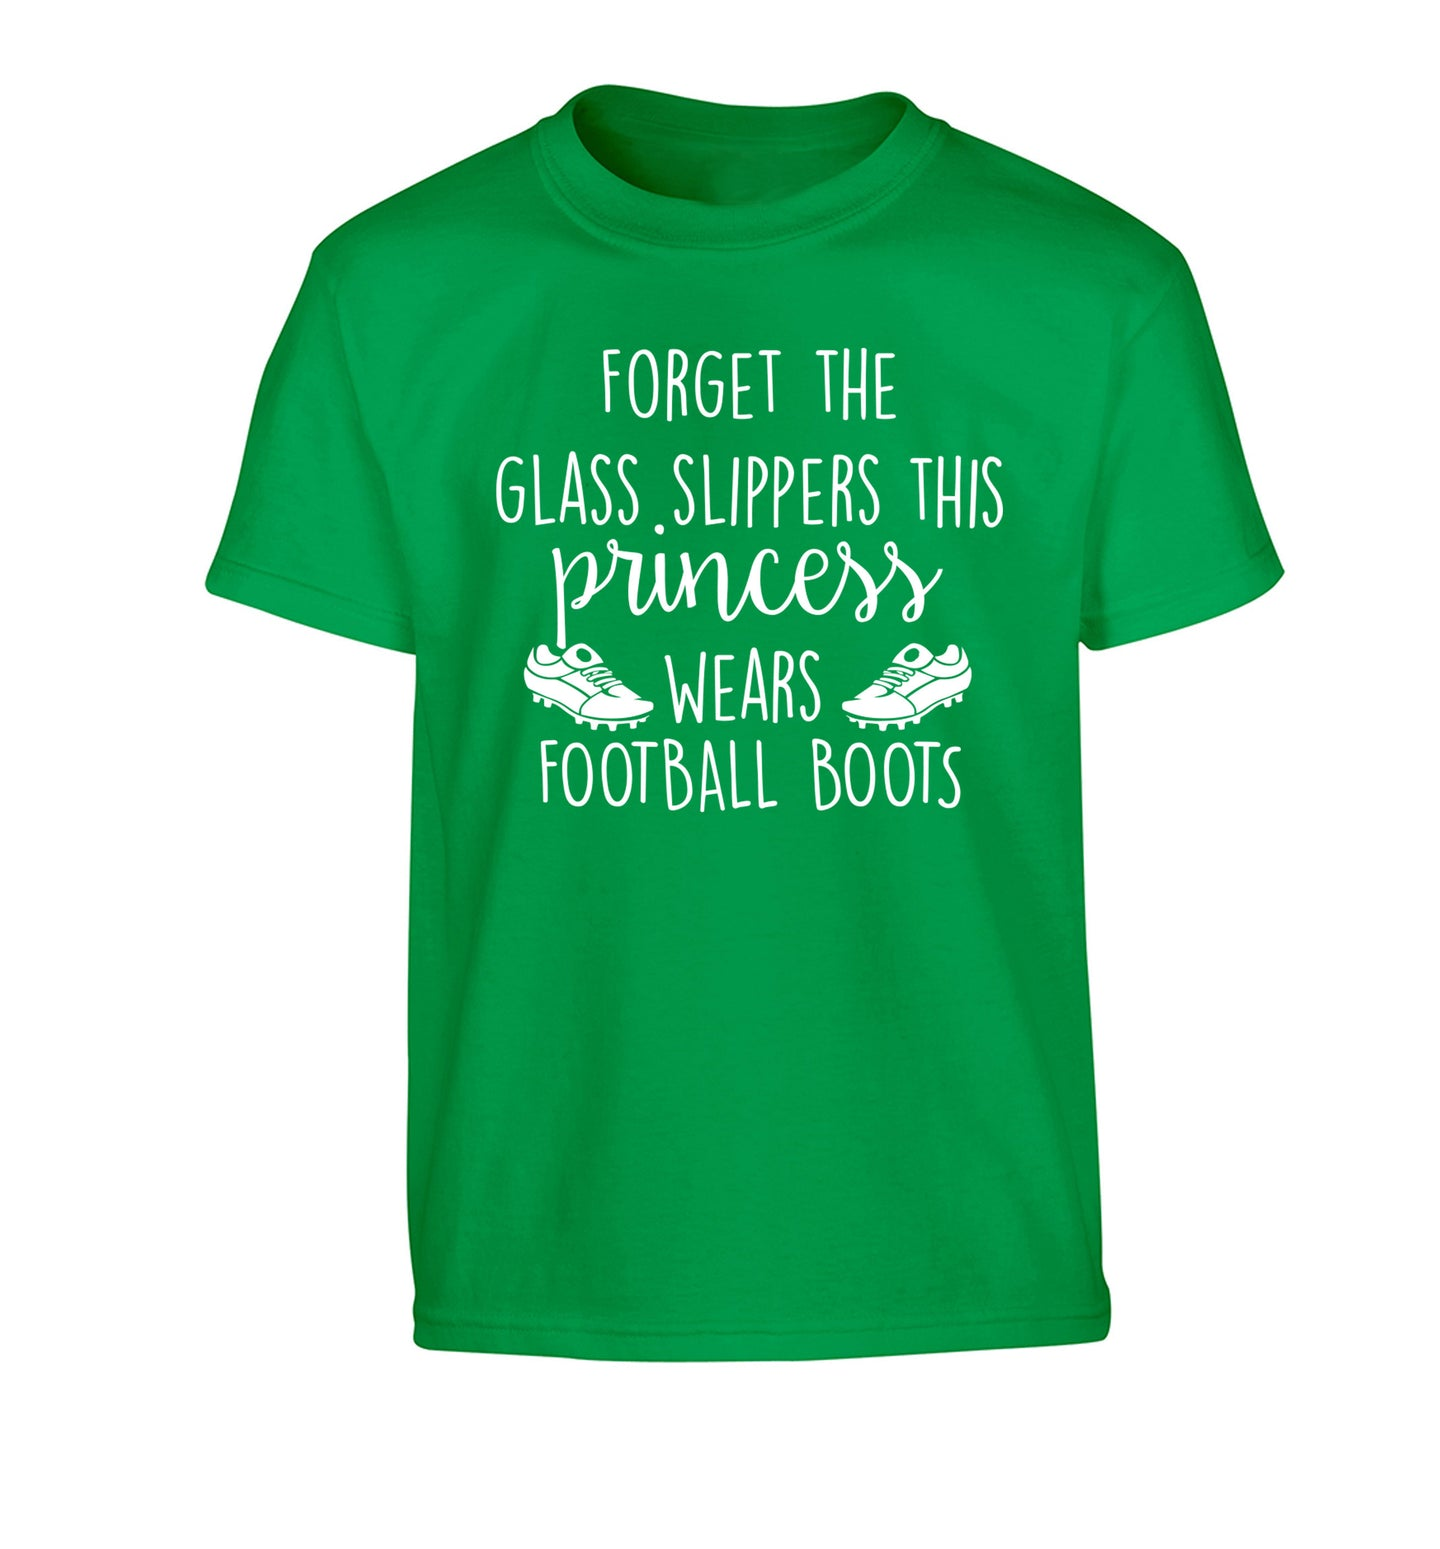 Forget the glass slippers this princess wears football boots Children's green Tshirt 12-14 Years